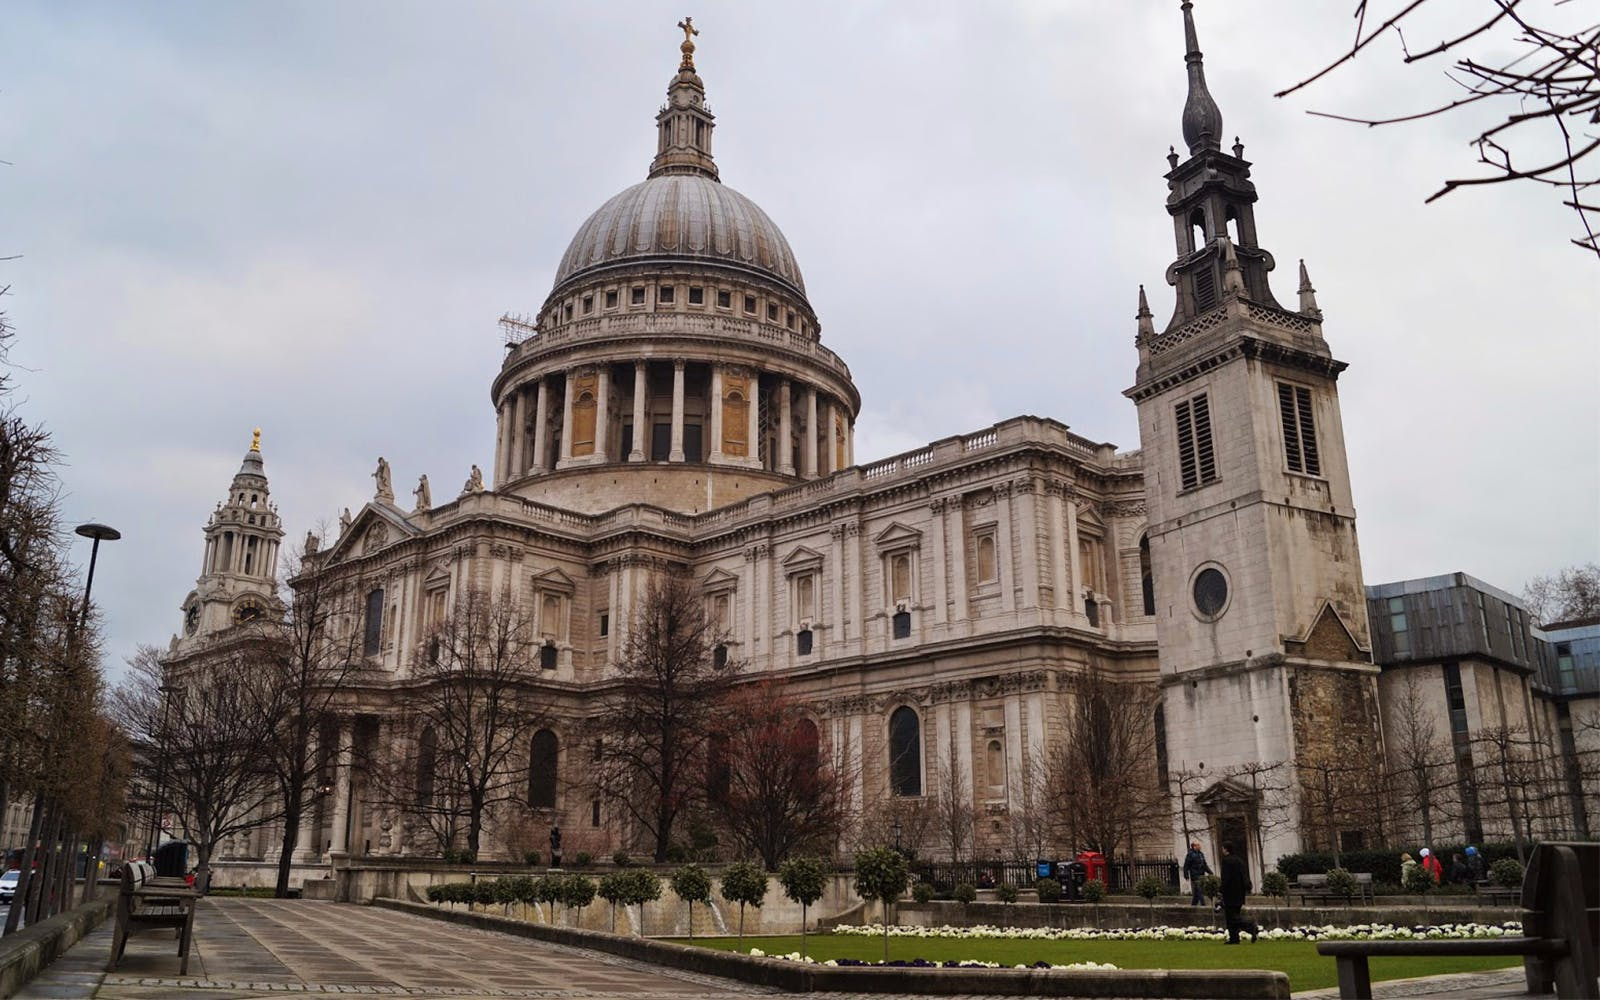 Panoramic Tour of London with Change of Guard & St Pauls Cathedral